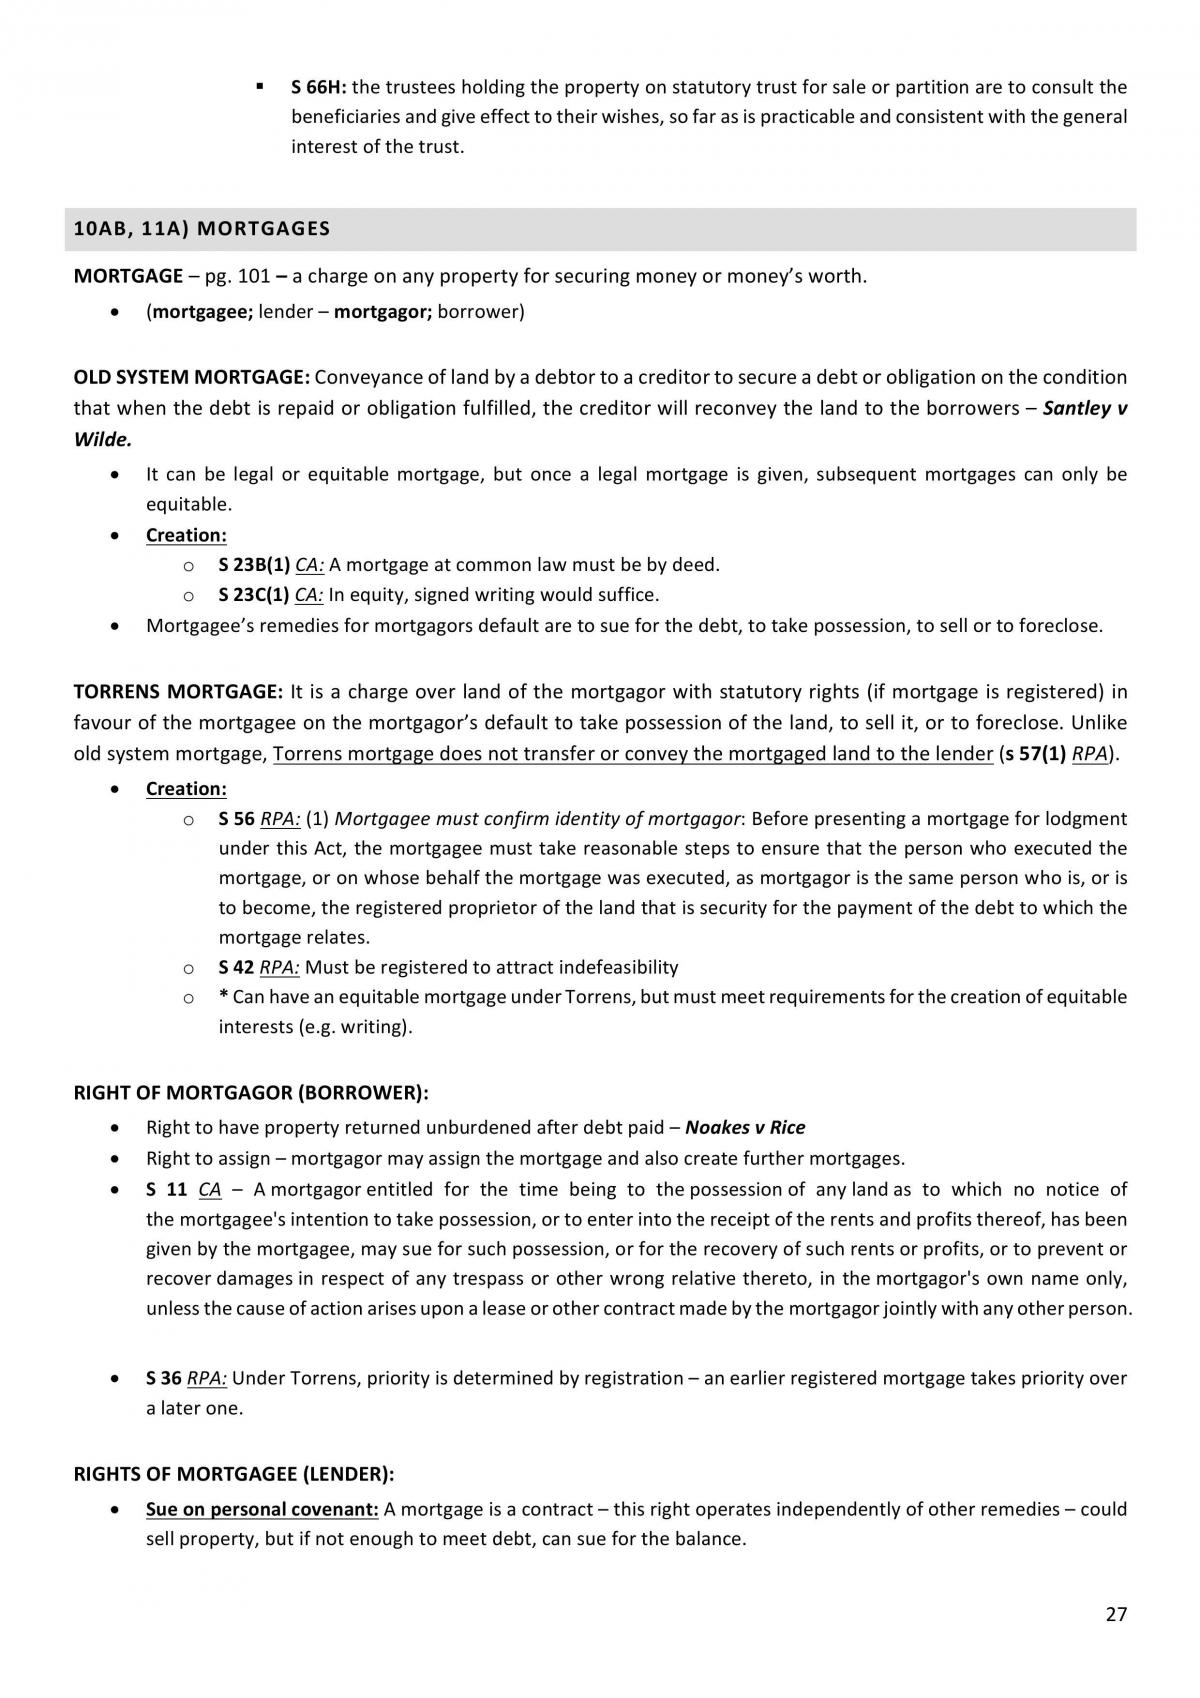 LAWS2383 - Land Law - Final Notes - Page 27